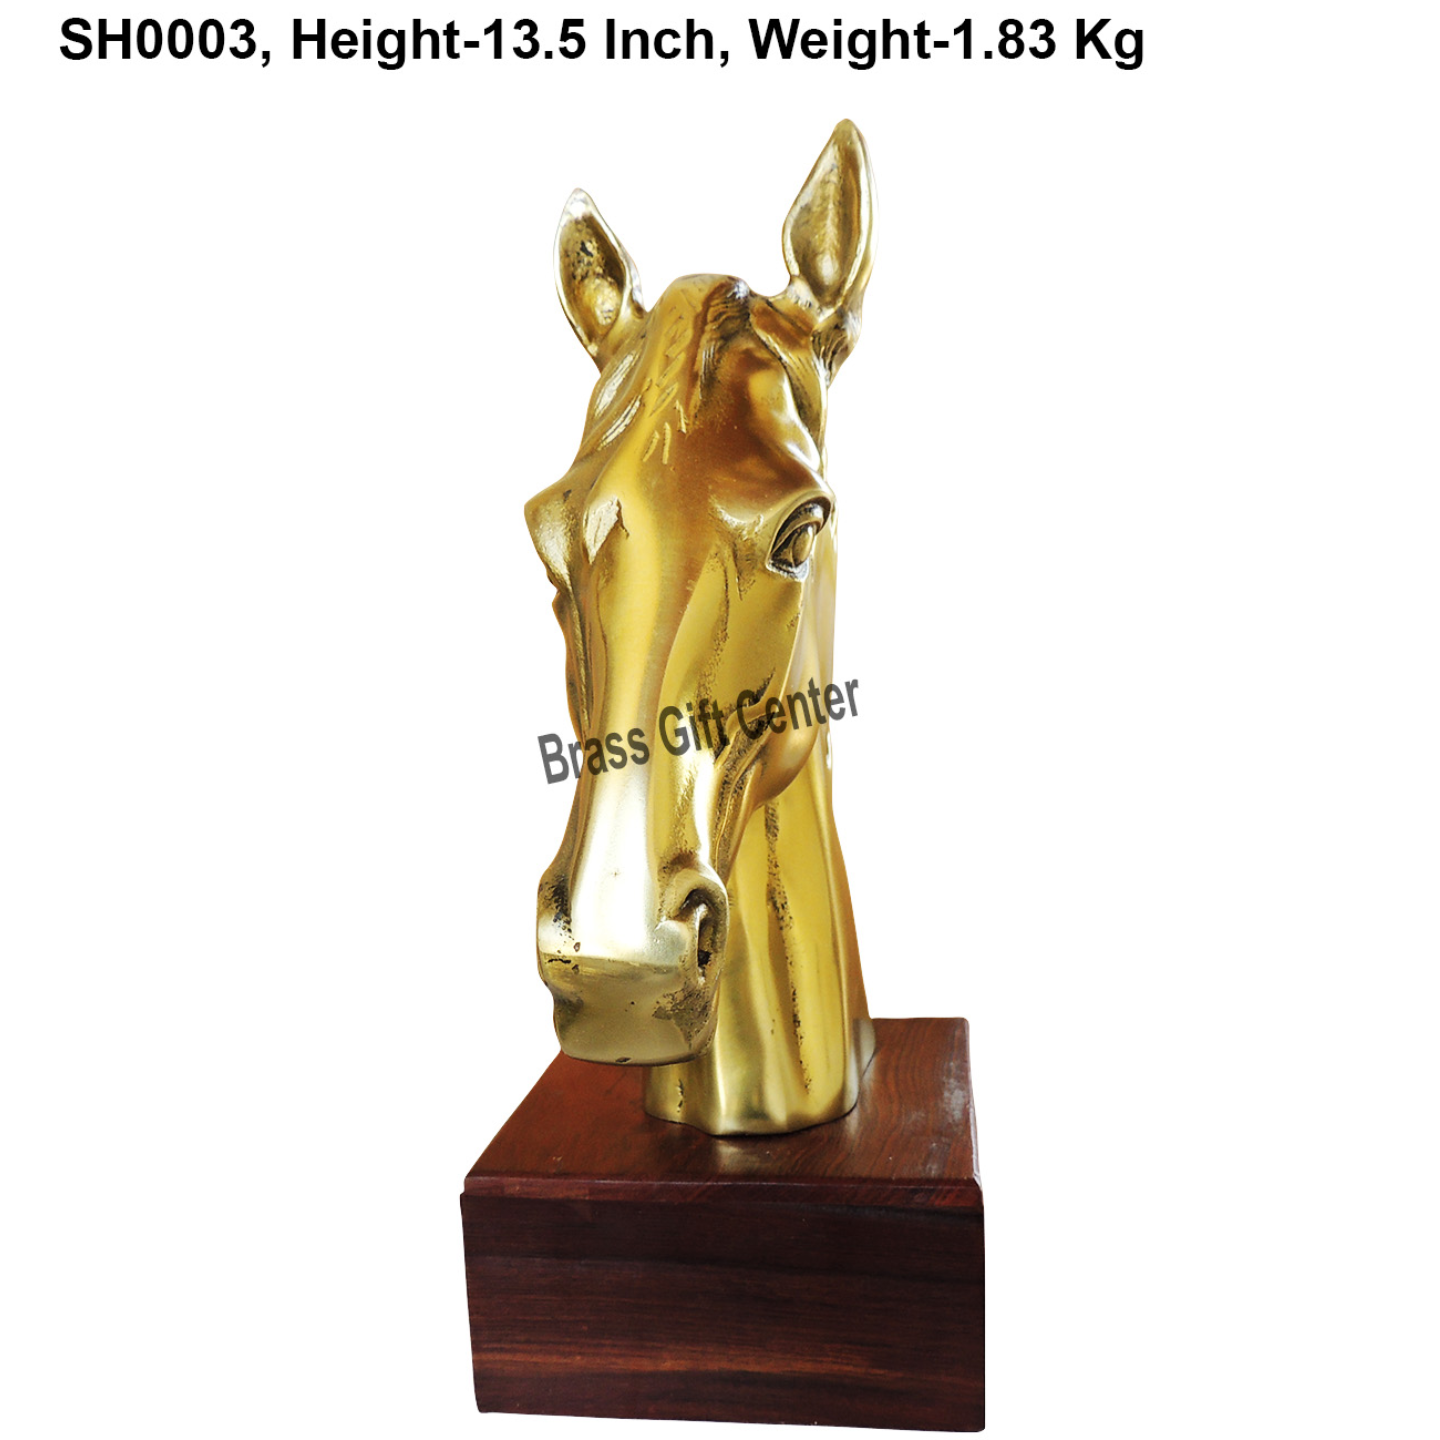 Metal Horse Statue In Brass Finish With Wooden Base - 13.5 Inch  (SH0003)